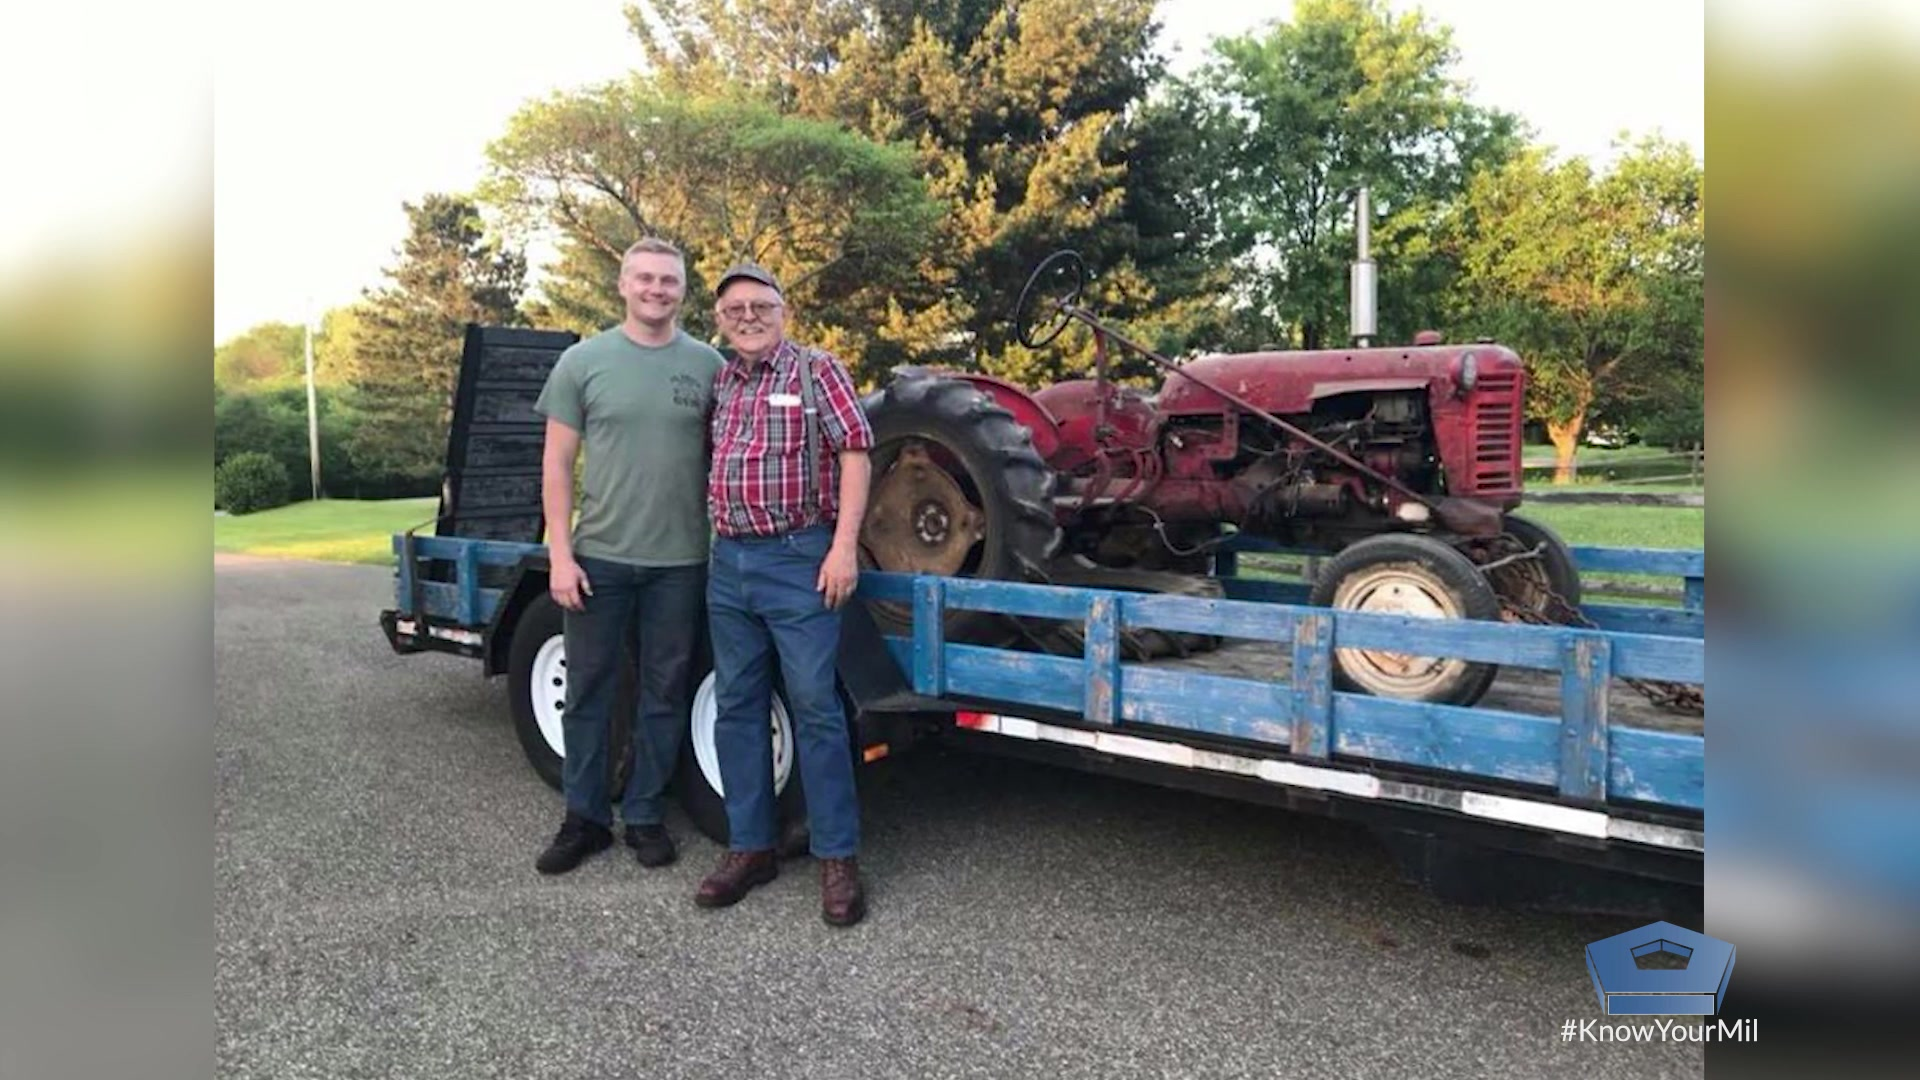 Air Force Staff Sgt. Eric Mann is a military broadcast journalist. At least, that's his day job. He spends his off duty time working on a very large and very heavy family heirloom. It's an old antique tractor handed down from his grandfather.